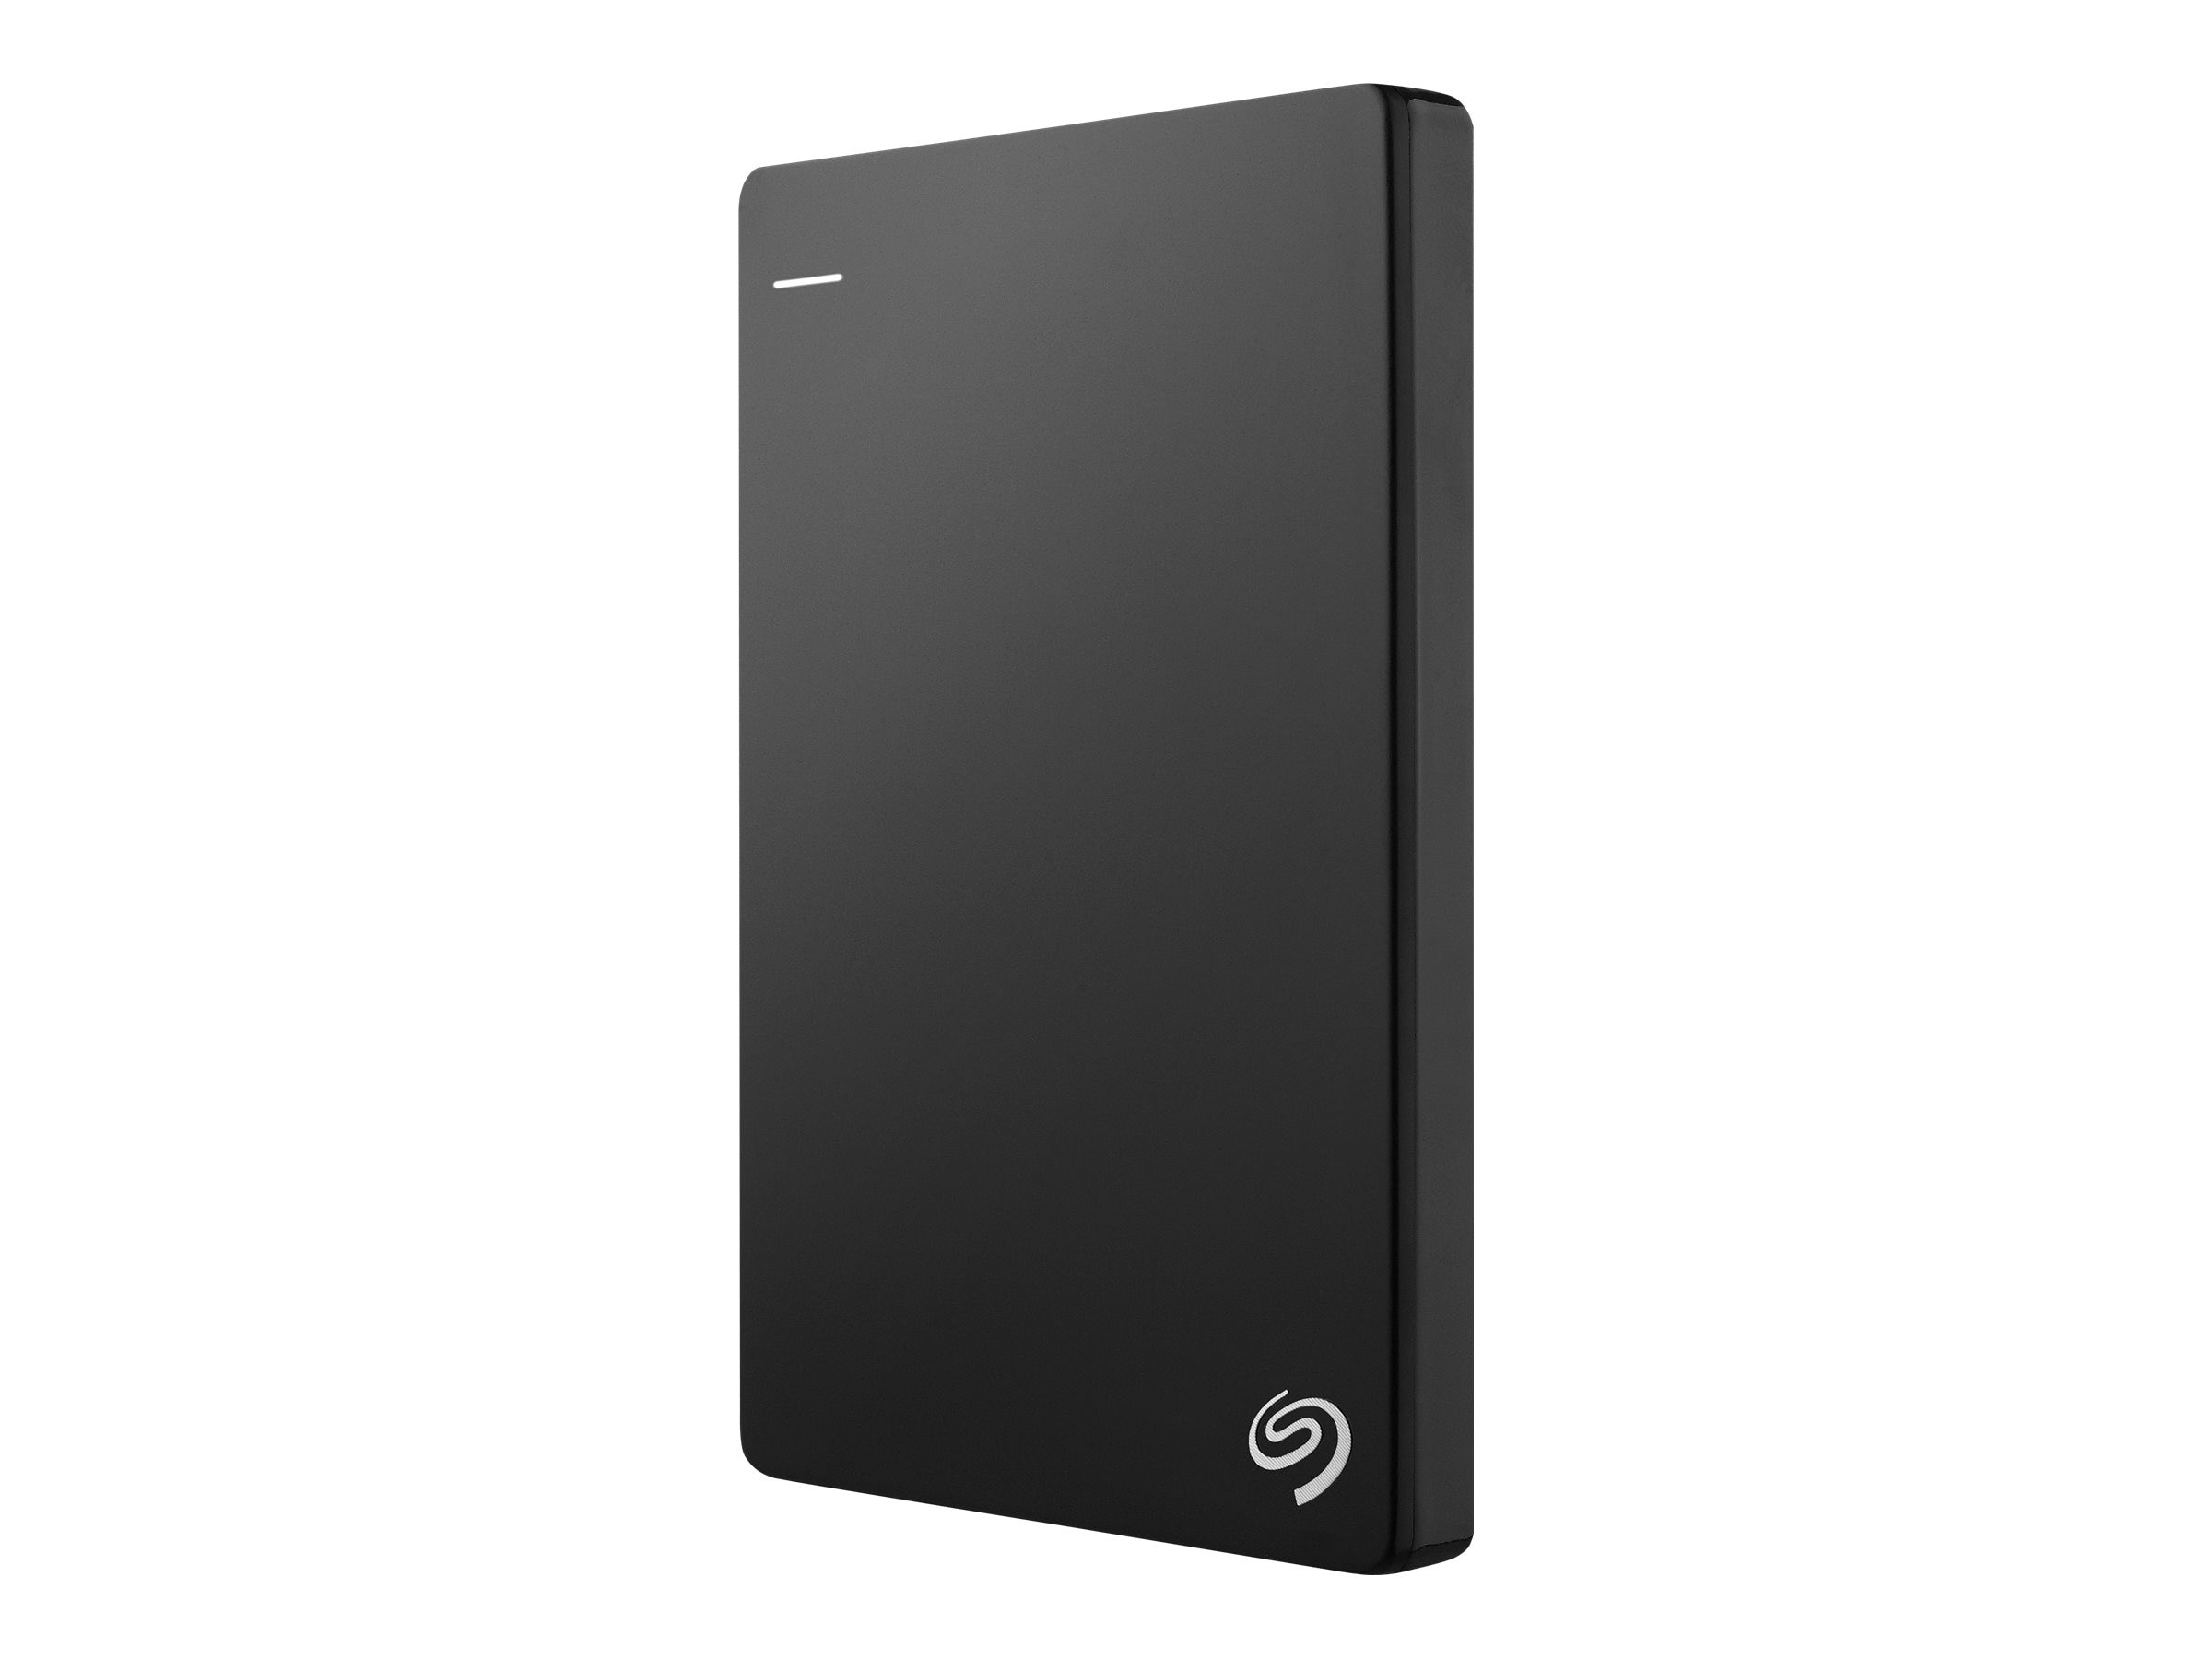 Seagate 4TB Backup Plus USB 3.0 Portable Hard Drive - Black